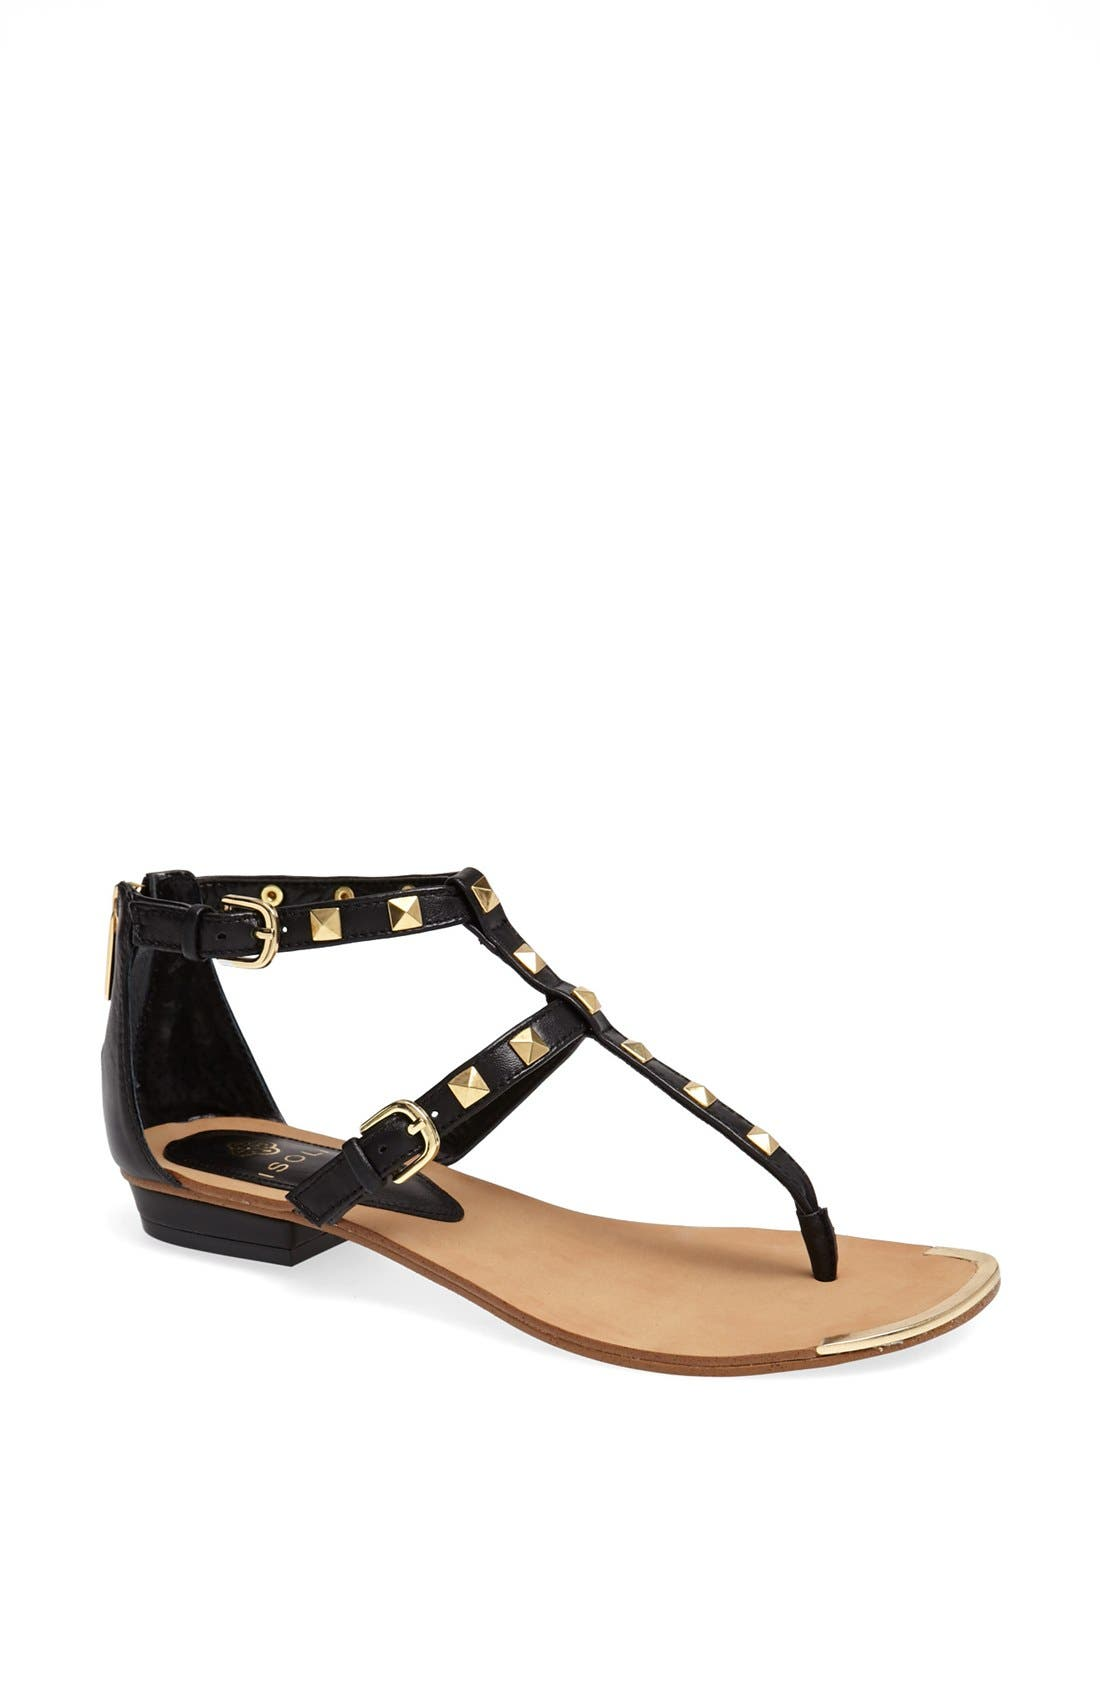 'Adie' Studded Leather Thong Sandal, Main, color, 001